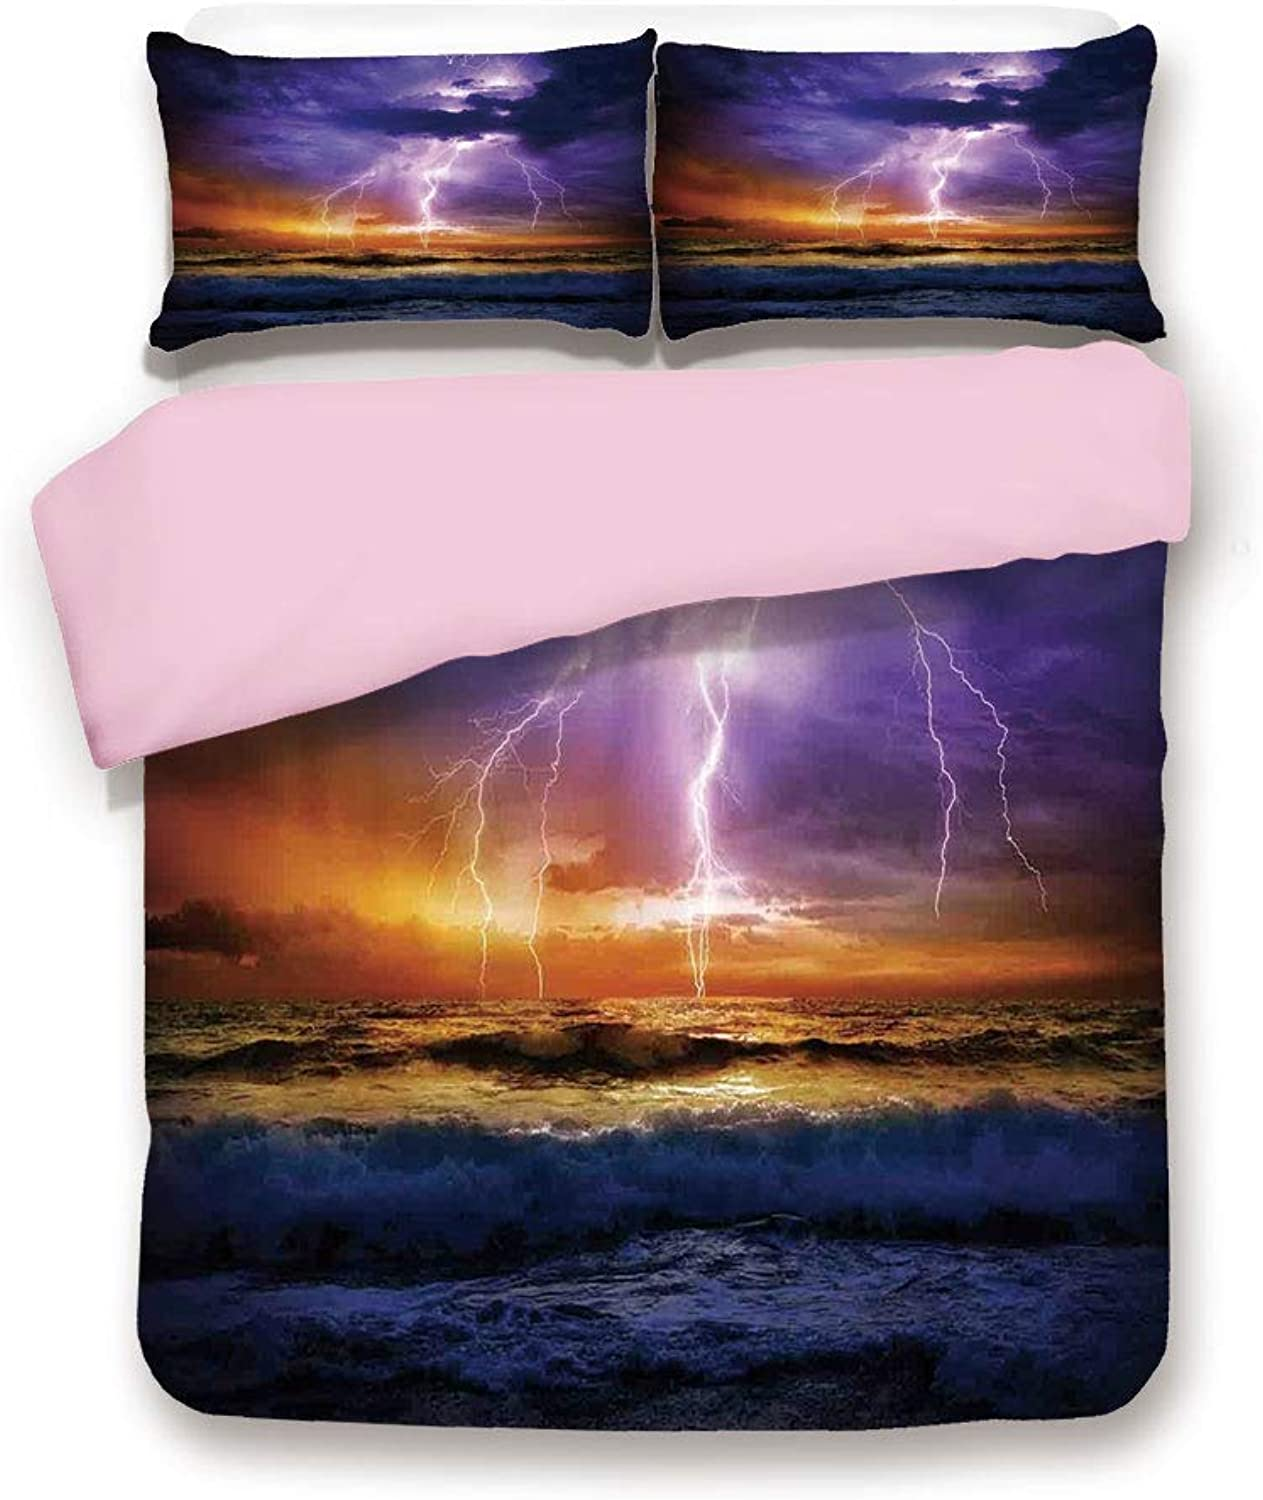 Pink Duvet Cover Set,King Size,Epic Lightning and Storm on the Sea Wave Horizon Bad Weather Atmosphere Home Decor,Decorative 3 Piece Bedding Set with 2 Pillow Sham,Best Gift For Girls Women,Purple Ora